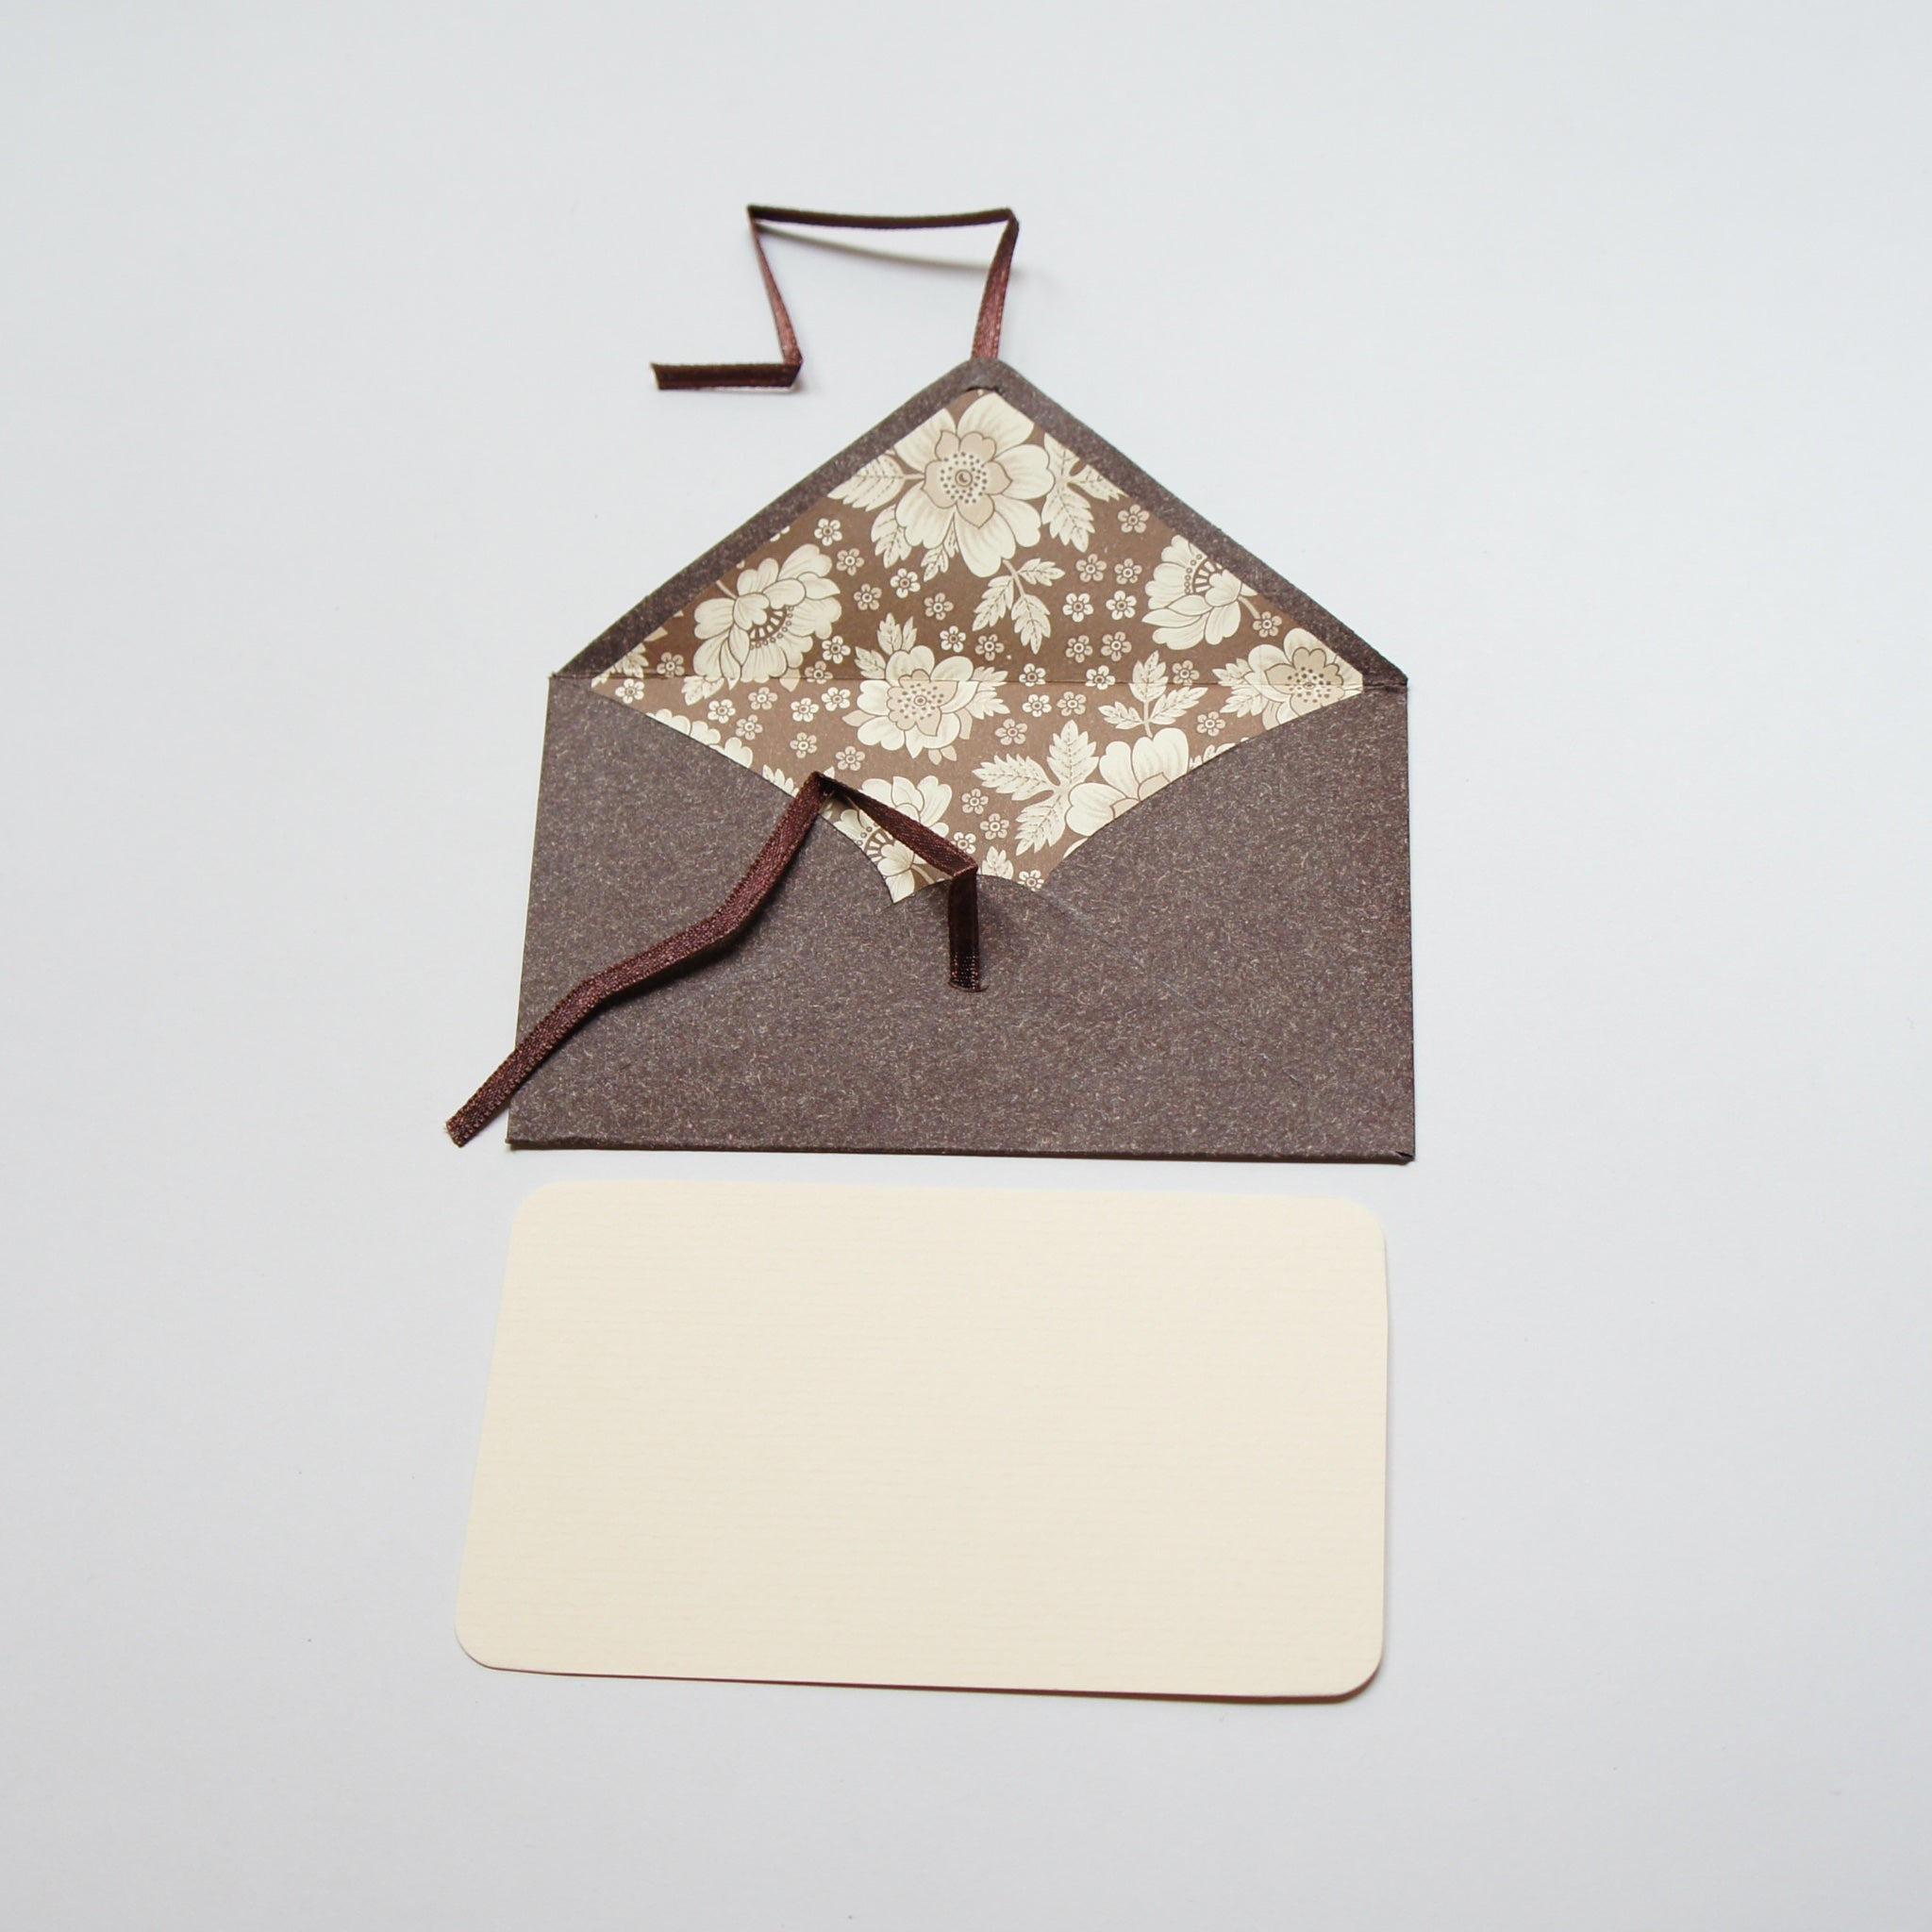 Small Charming Envelope and Note Card with a Secret